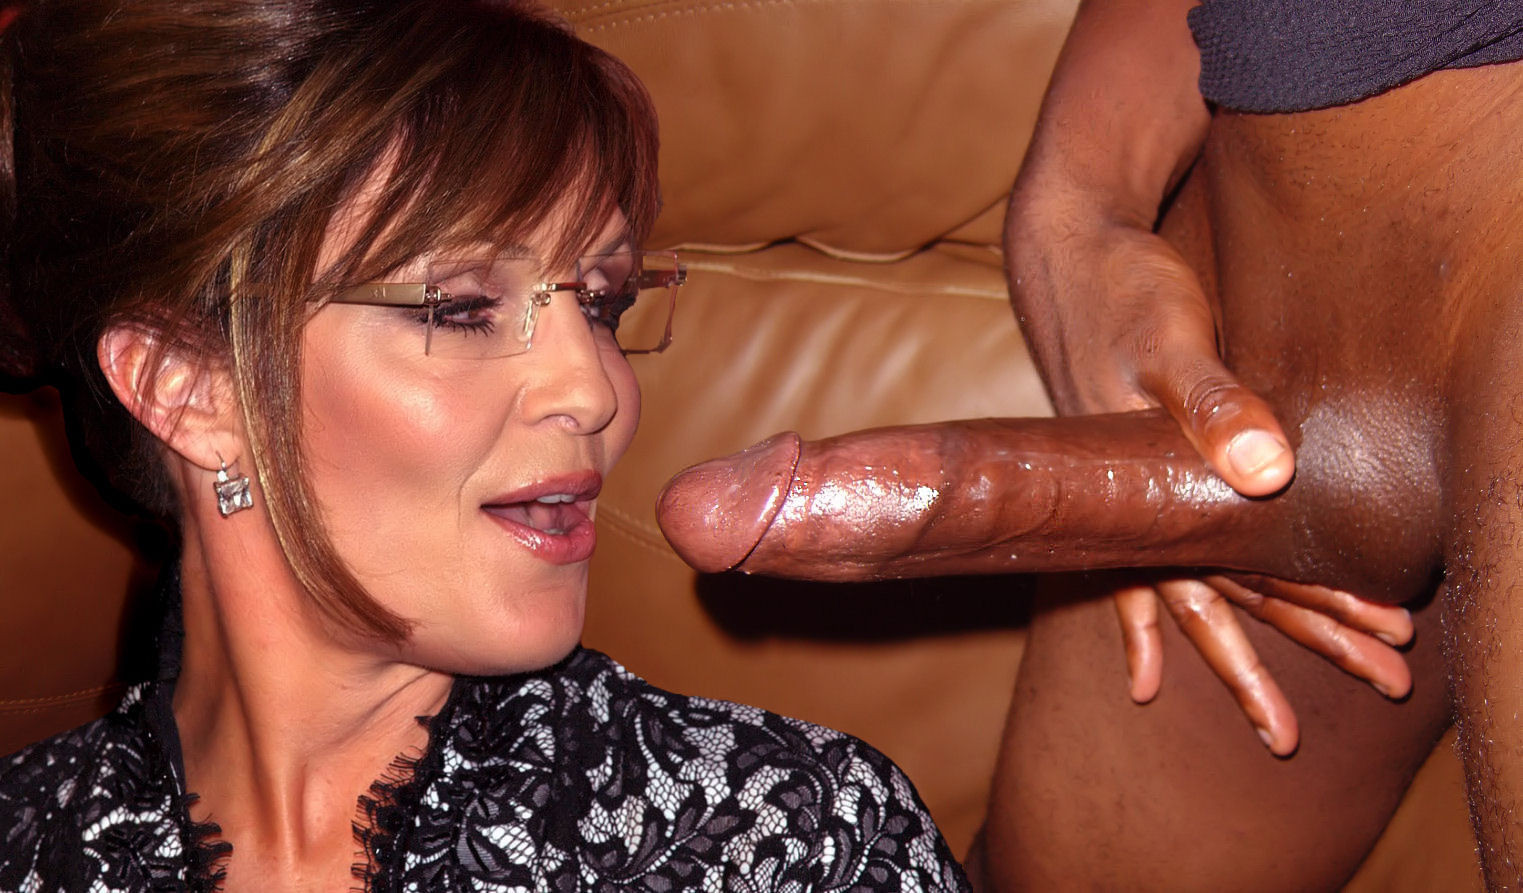 palin sarah look porn a like